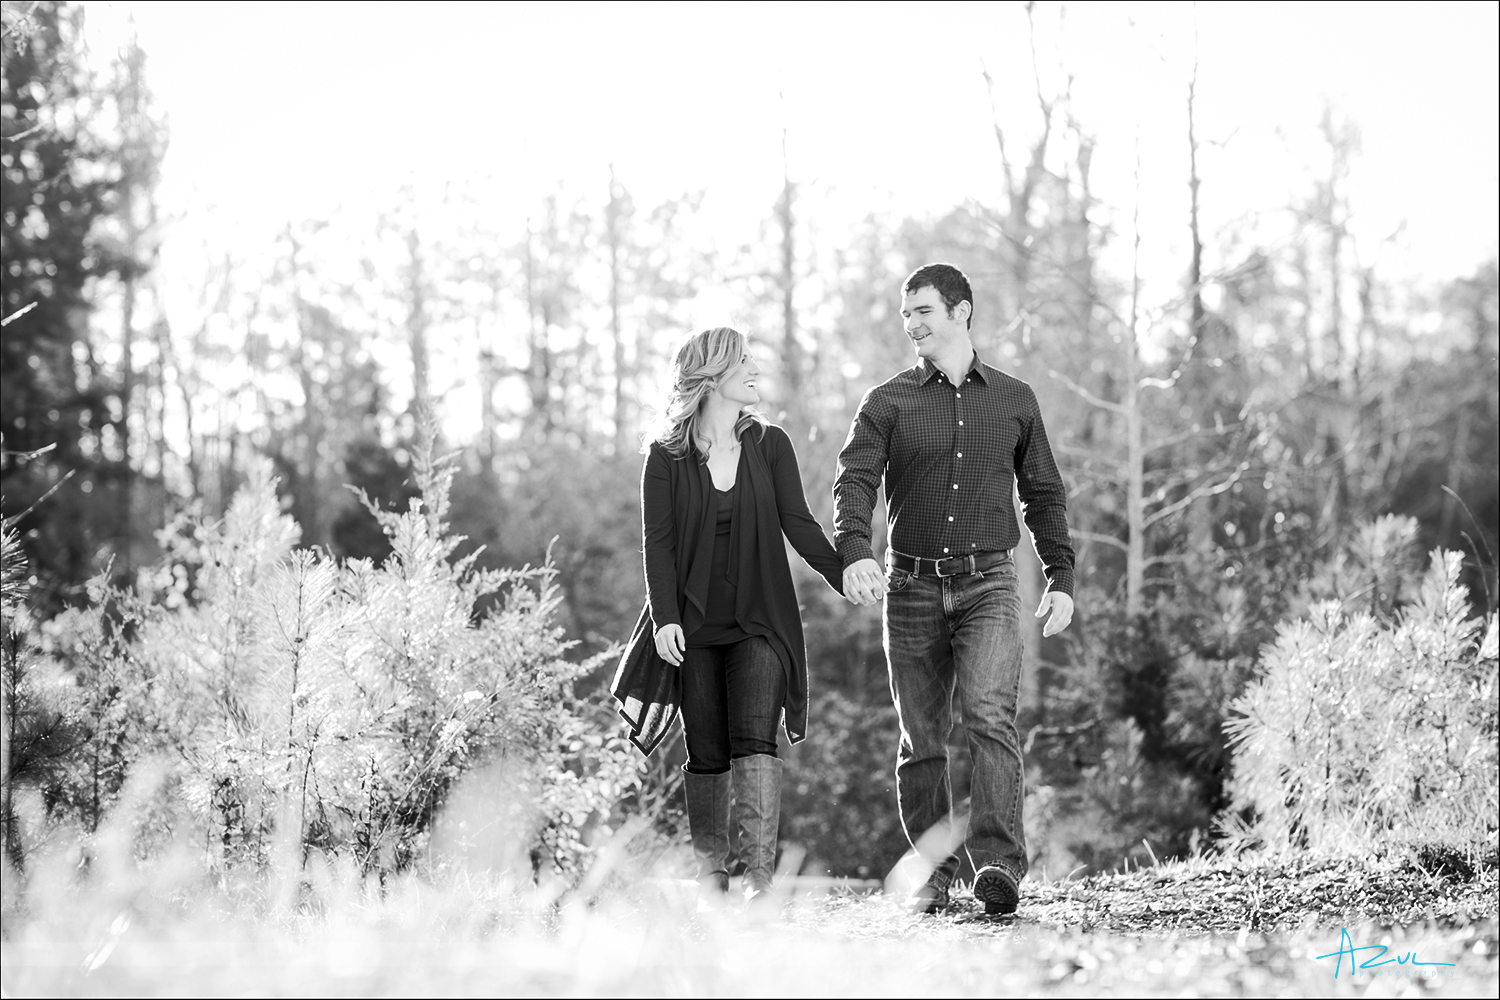 Outdoor portrait photography with couples